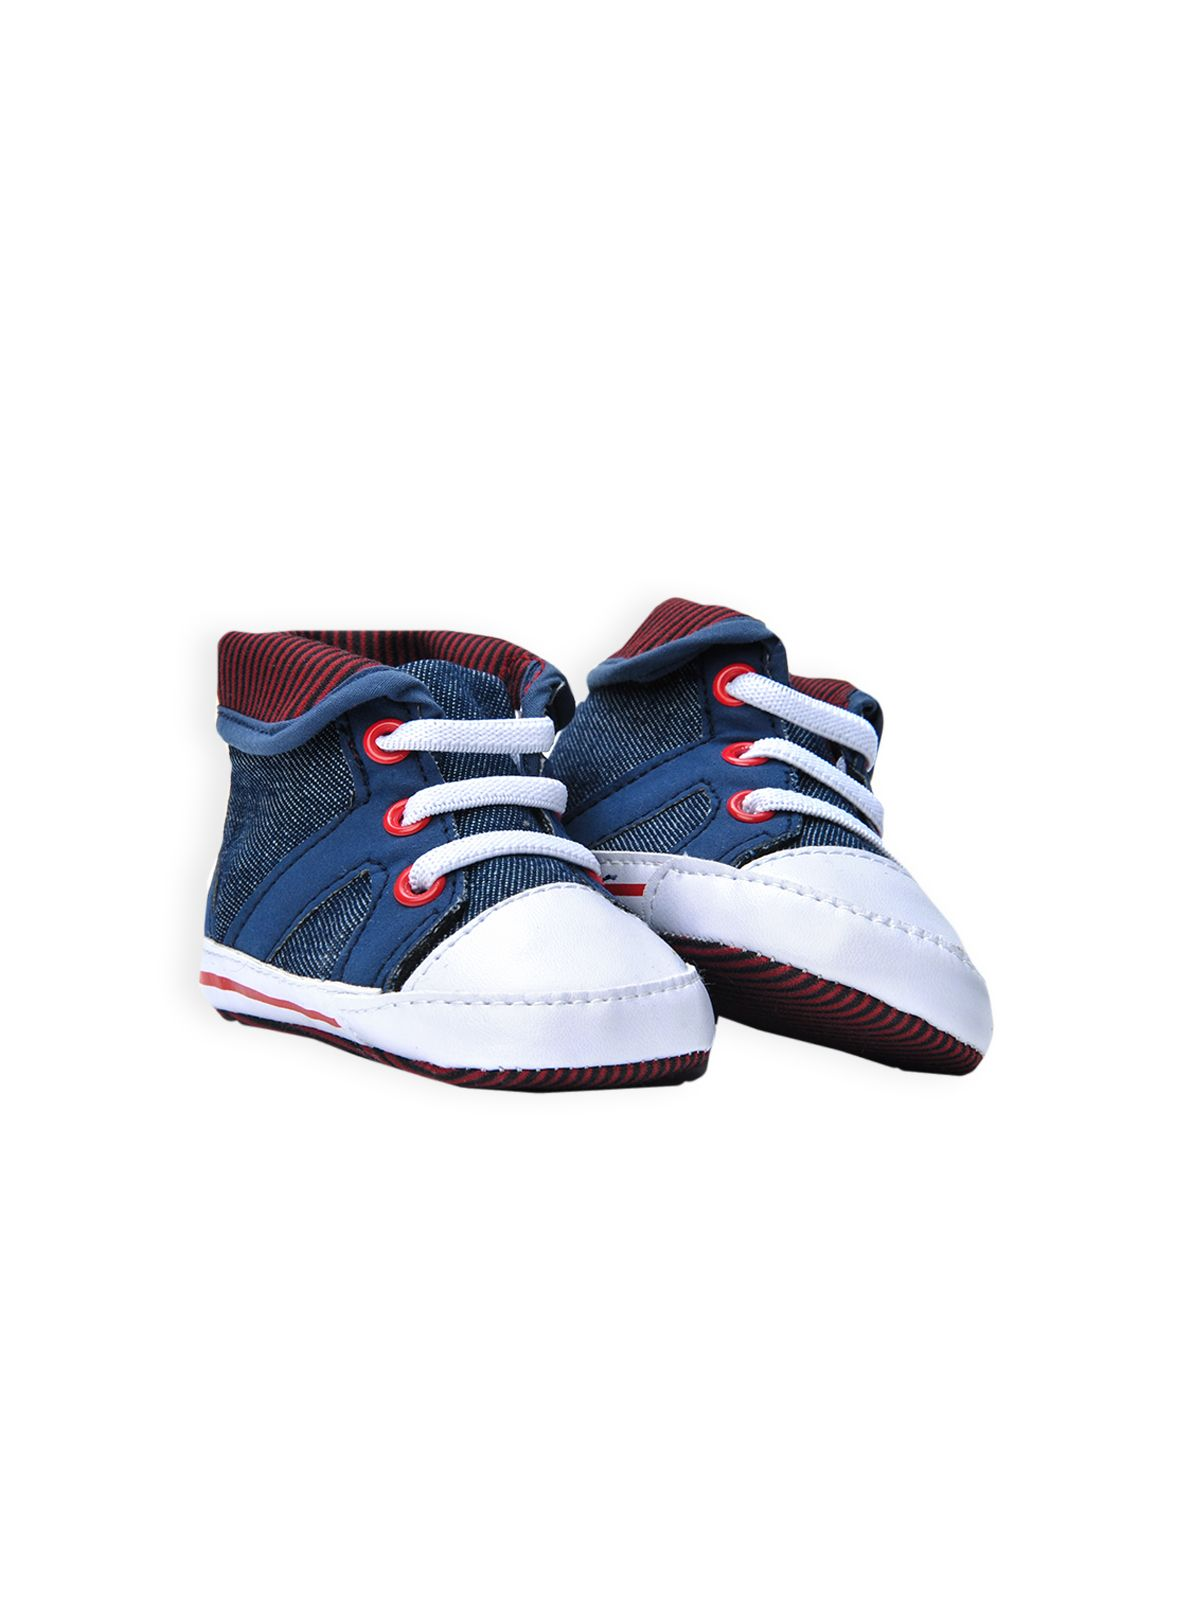 Boys baby boy cuff hi top